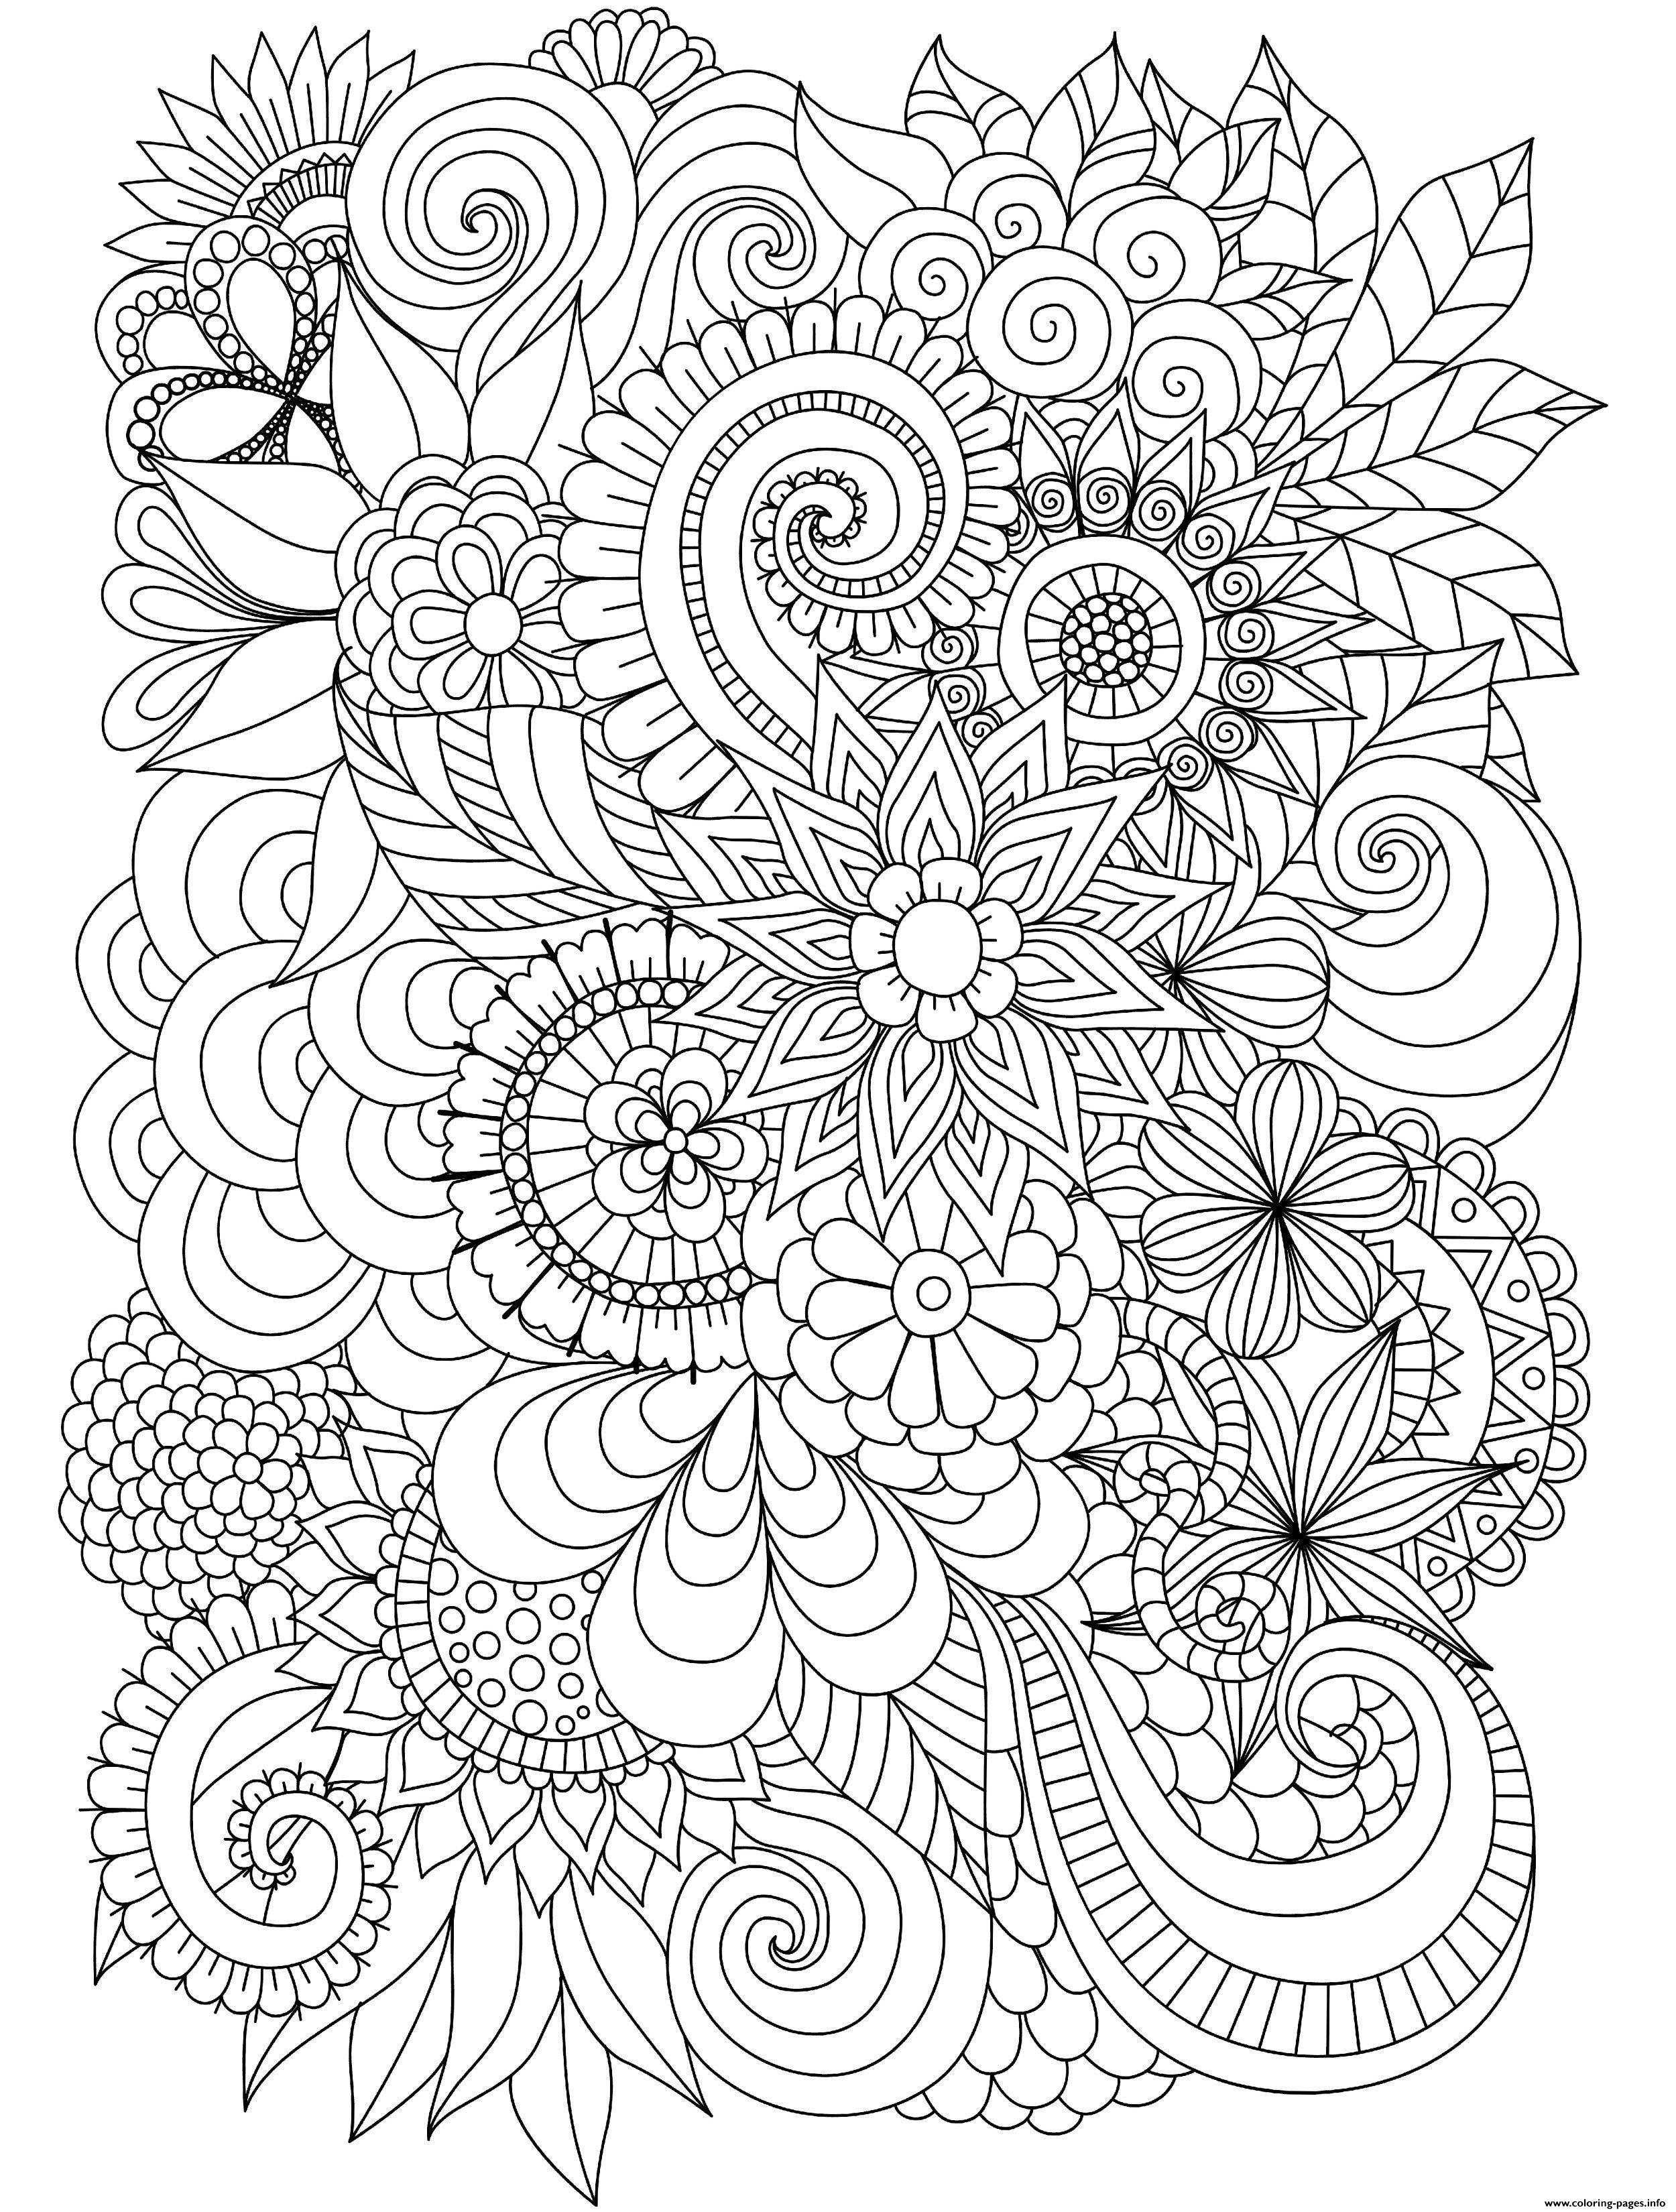 free complex coloring pages complex coloring pages for teens and adults best coloring complex pages free